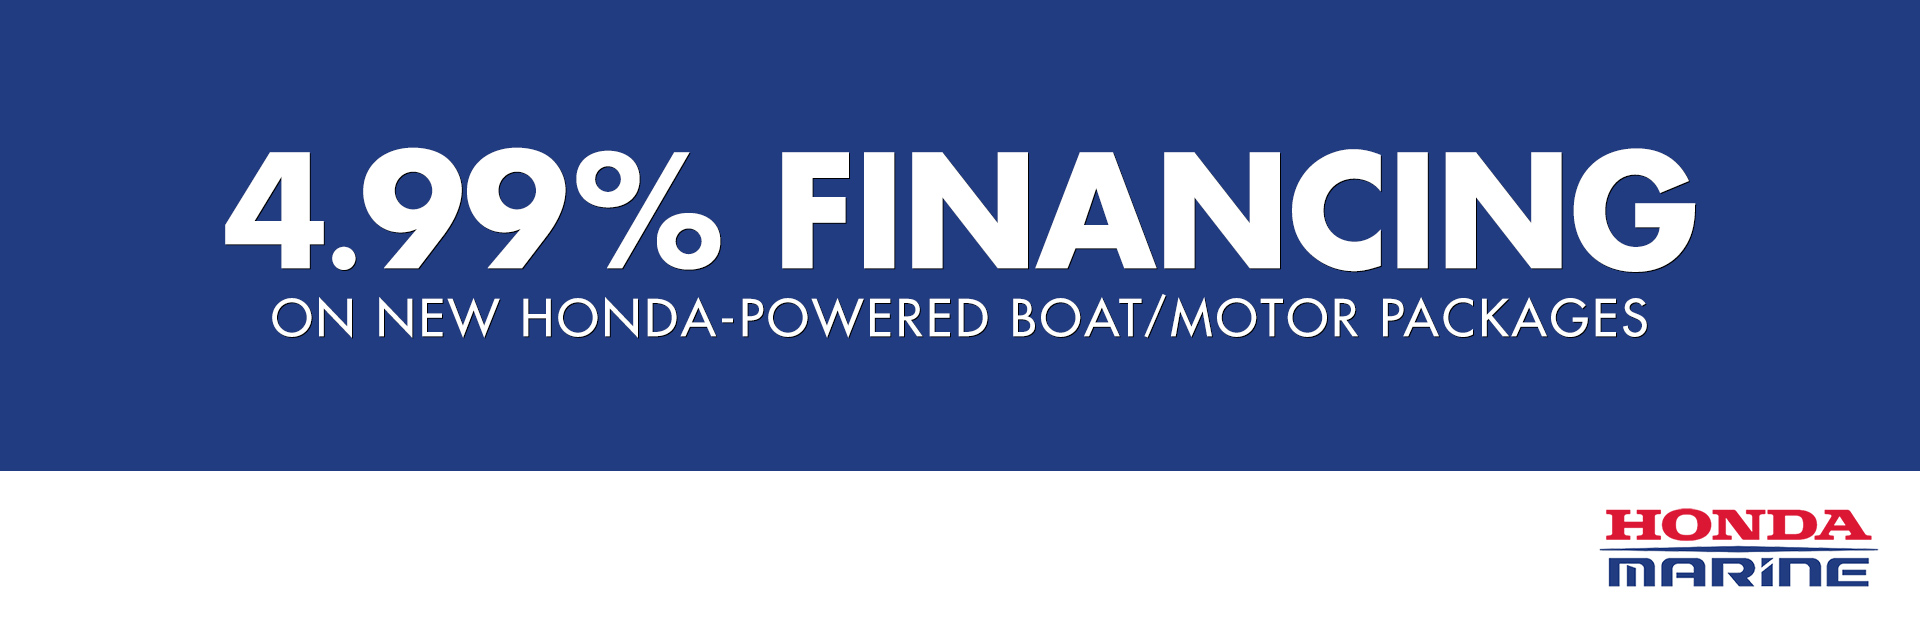 Honda Marine: 4.99% on New Honda-Powered Boat/Motor Packages